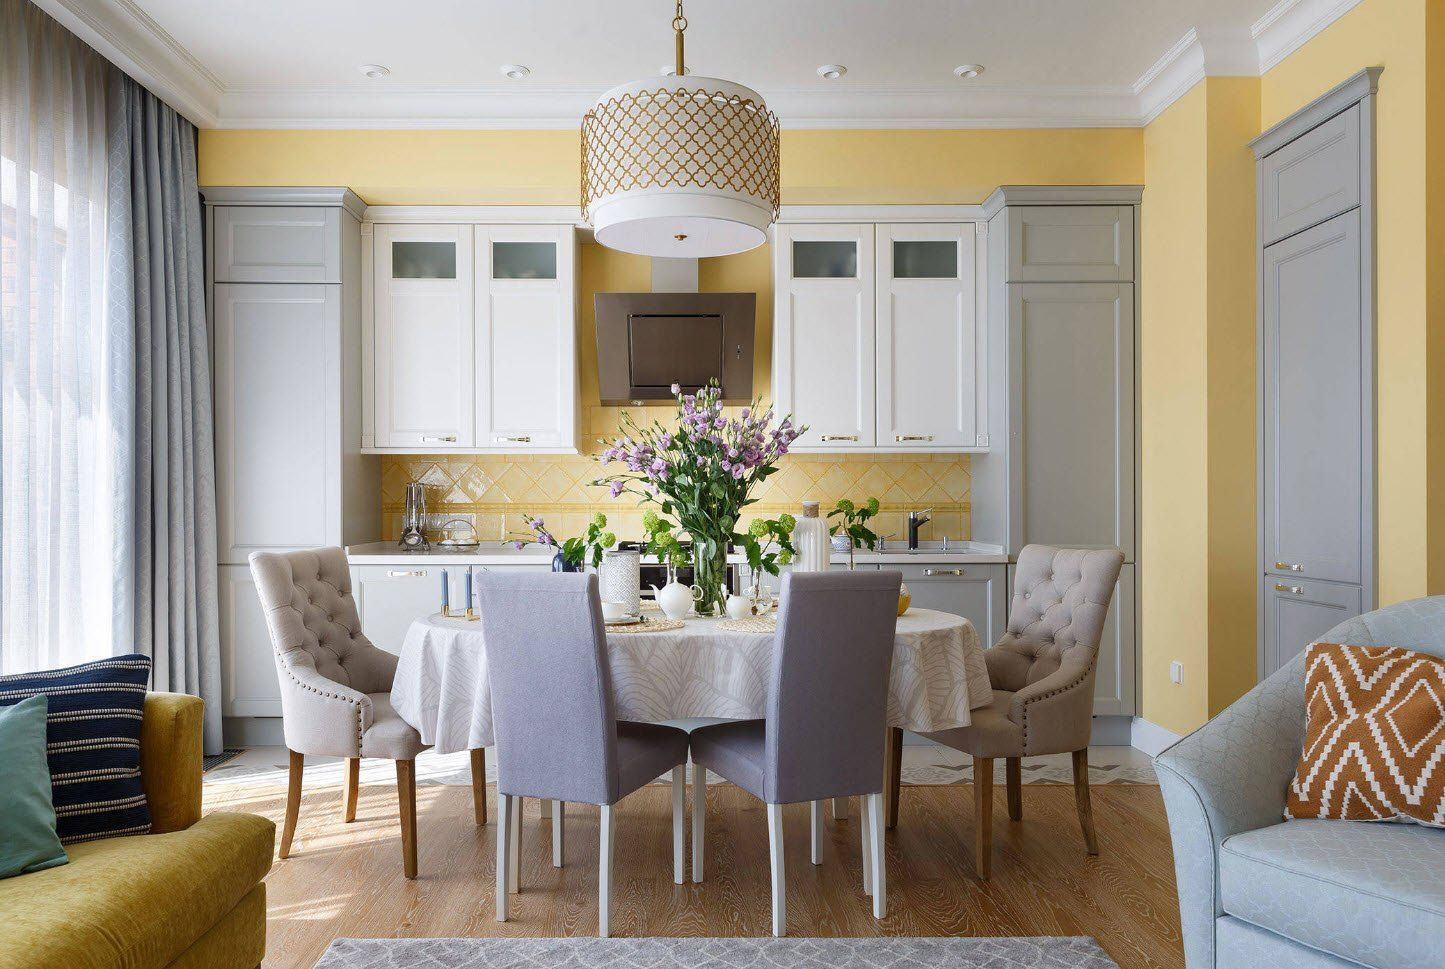 White Classic kitchen cabinets combined with yellow walls